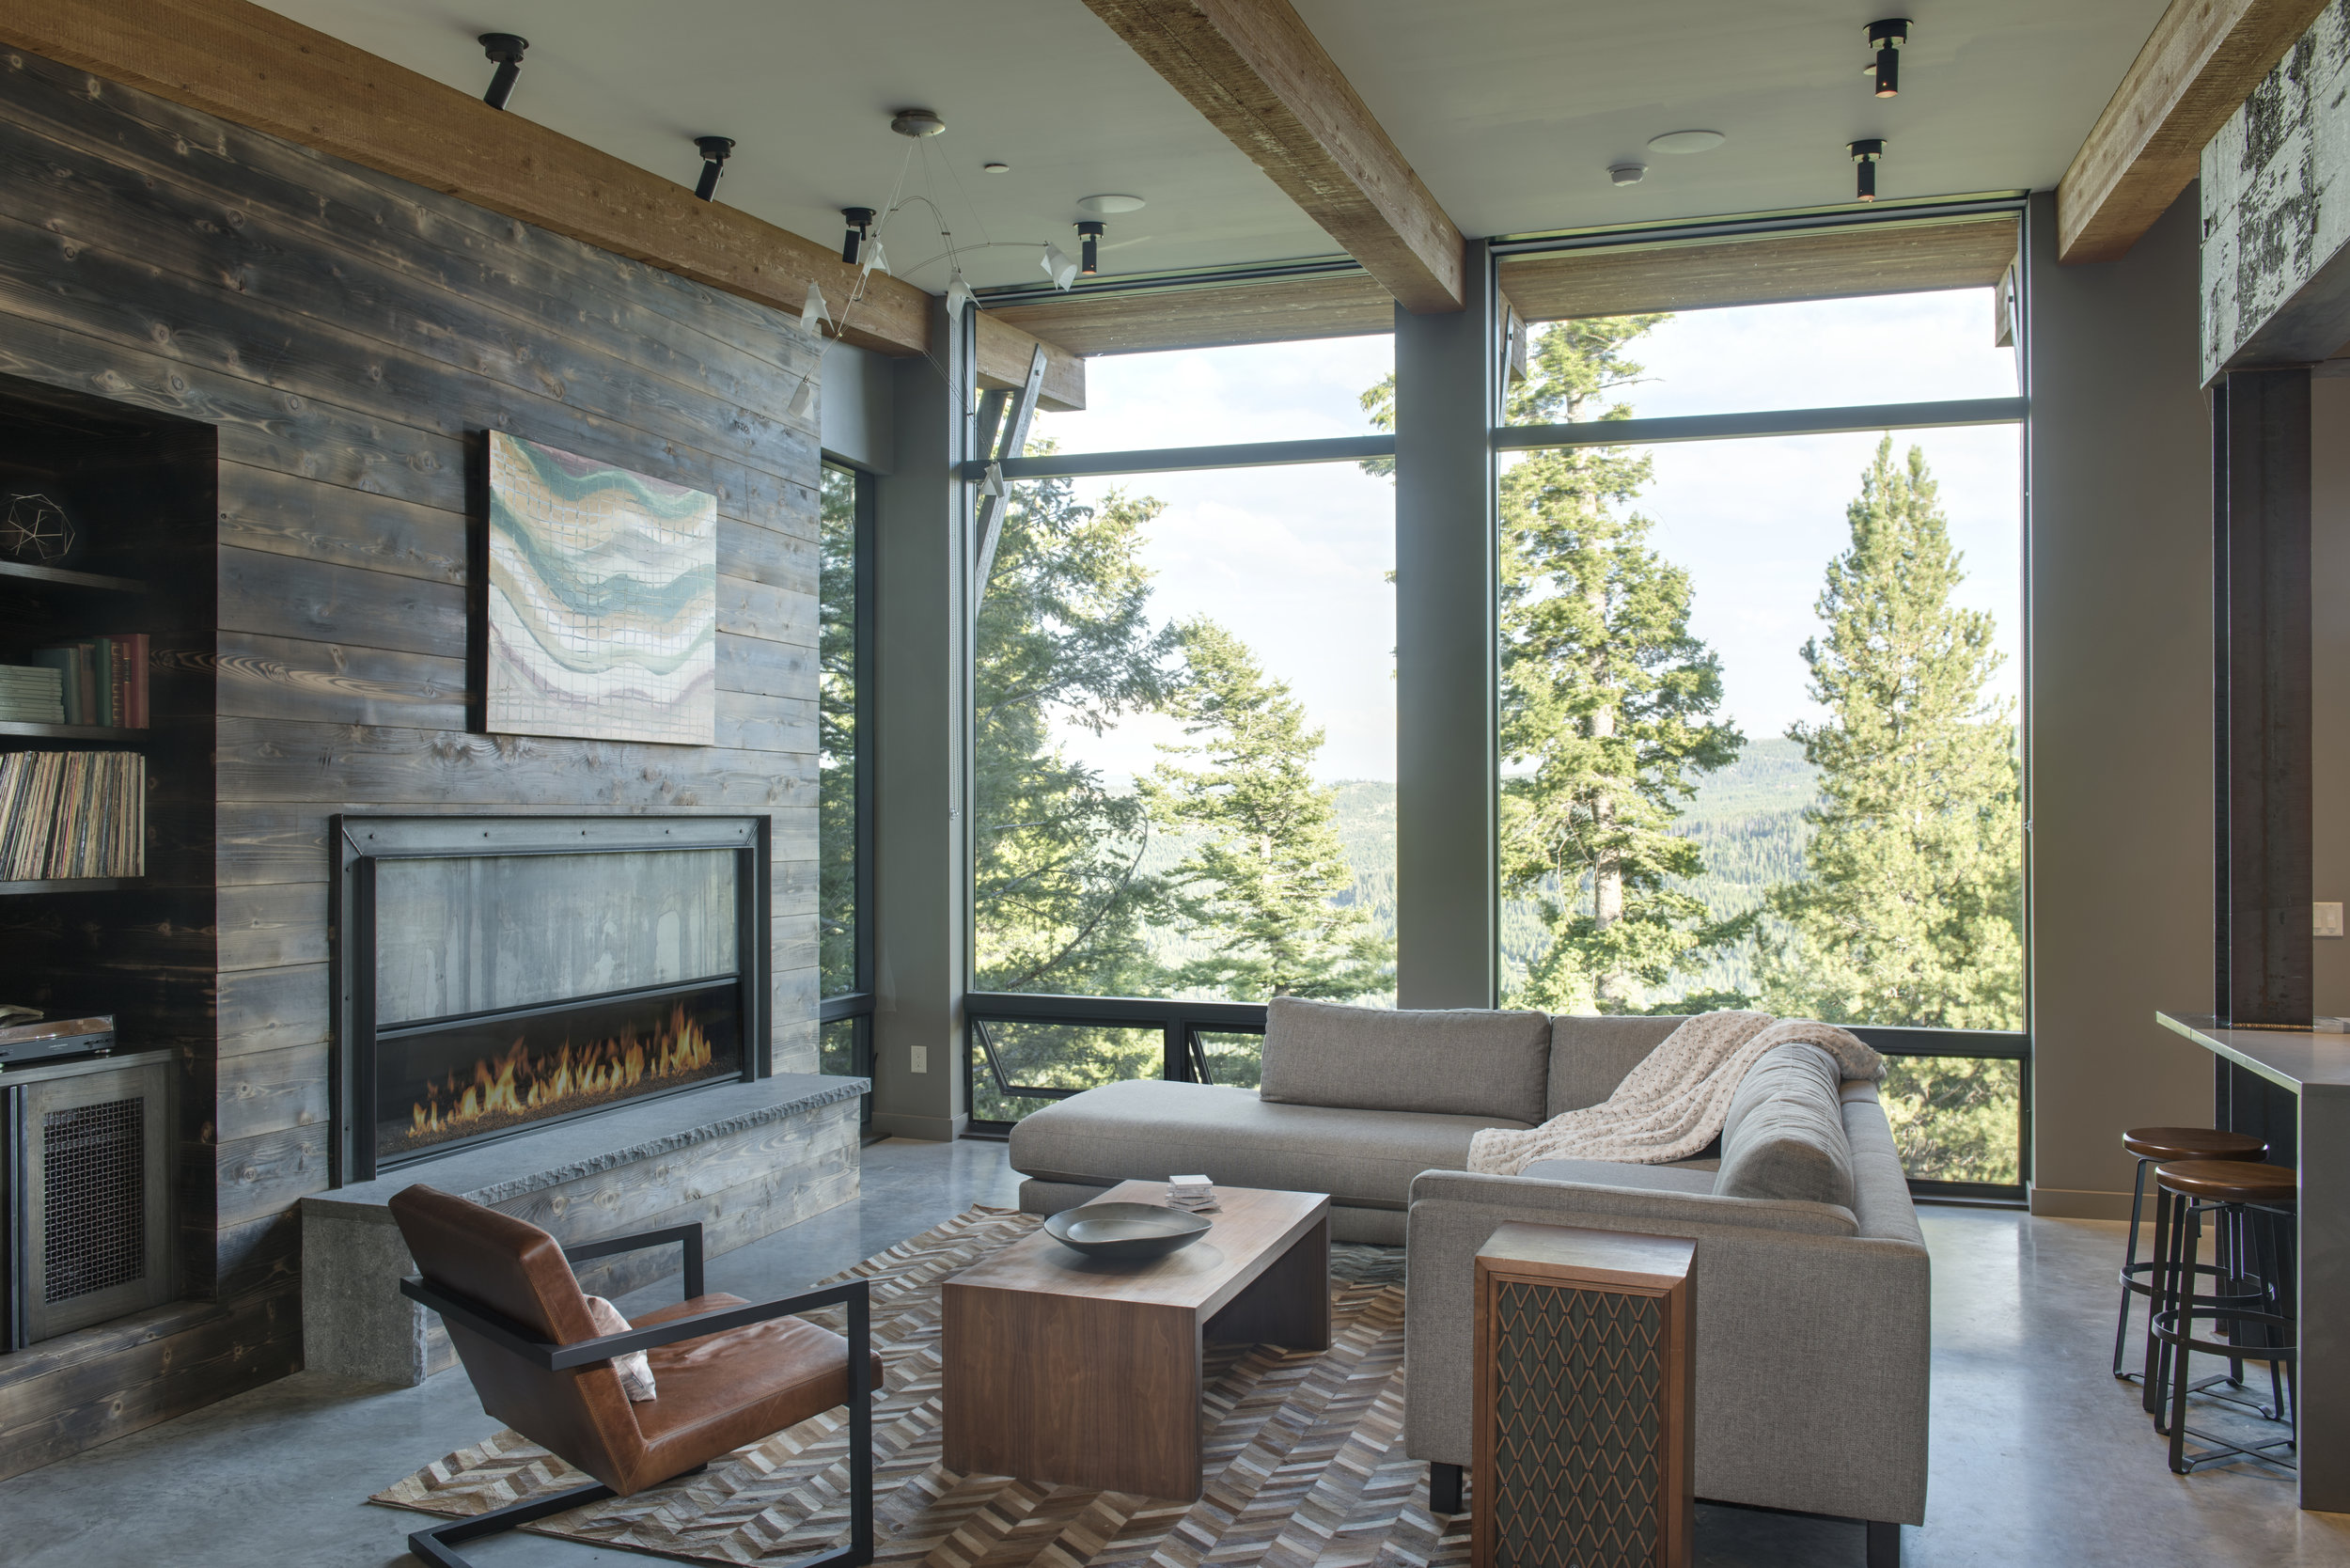 This amazing  Reid Smith Architects  designed home is located on a bluff in  Spanish Peaks Mountain Club . The burned wood wall, the windows, and the birch bark wallpaper put this great room as one of my absolute favorites!!